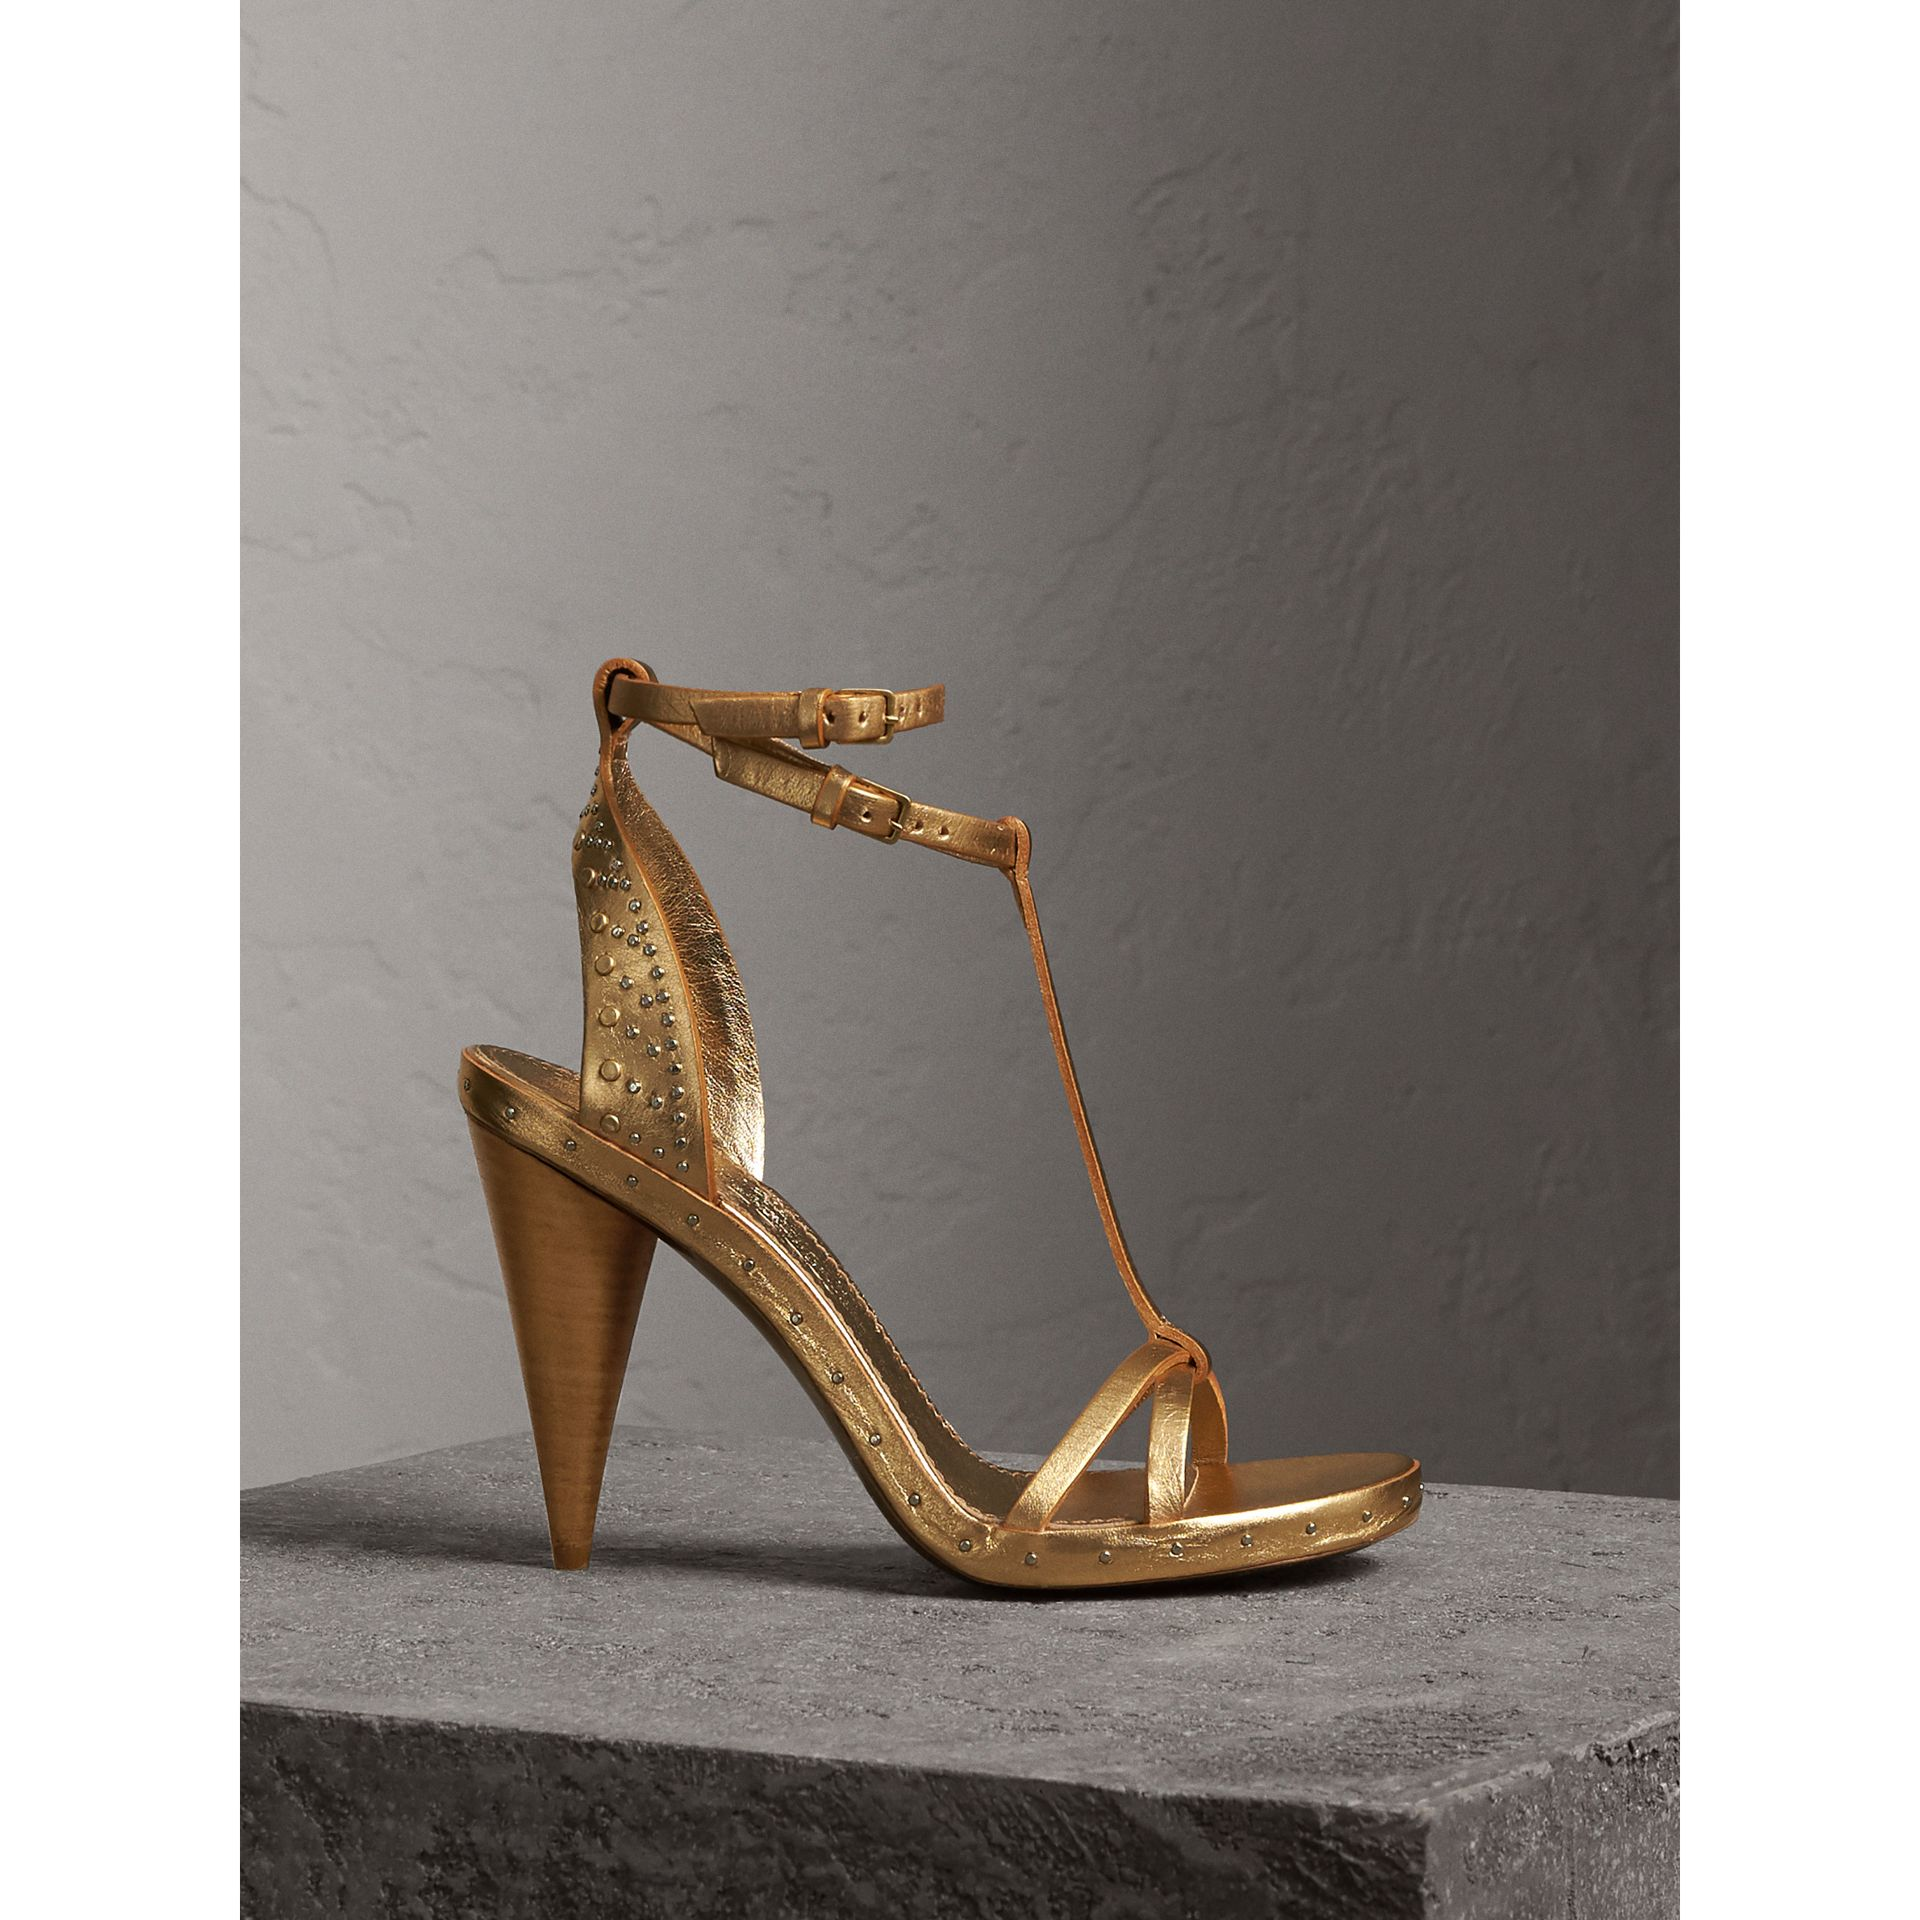 Riveted Metallic Leather Cone-heel Sandals in Gold | Burberry - gallery image 1